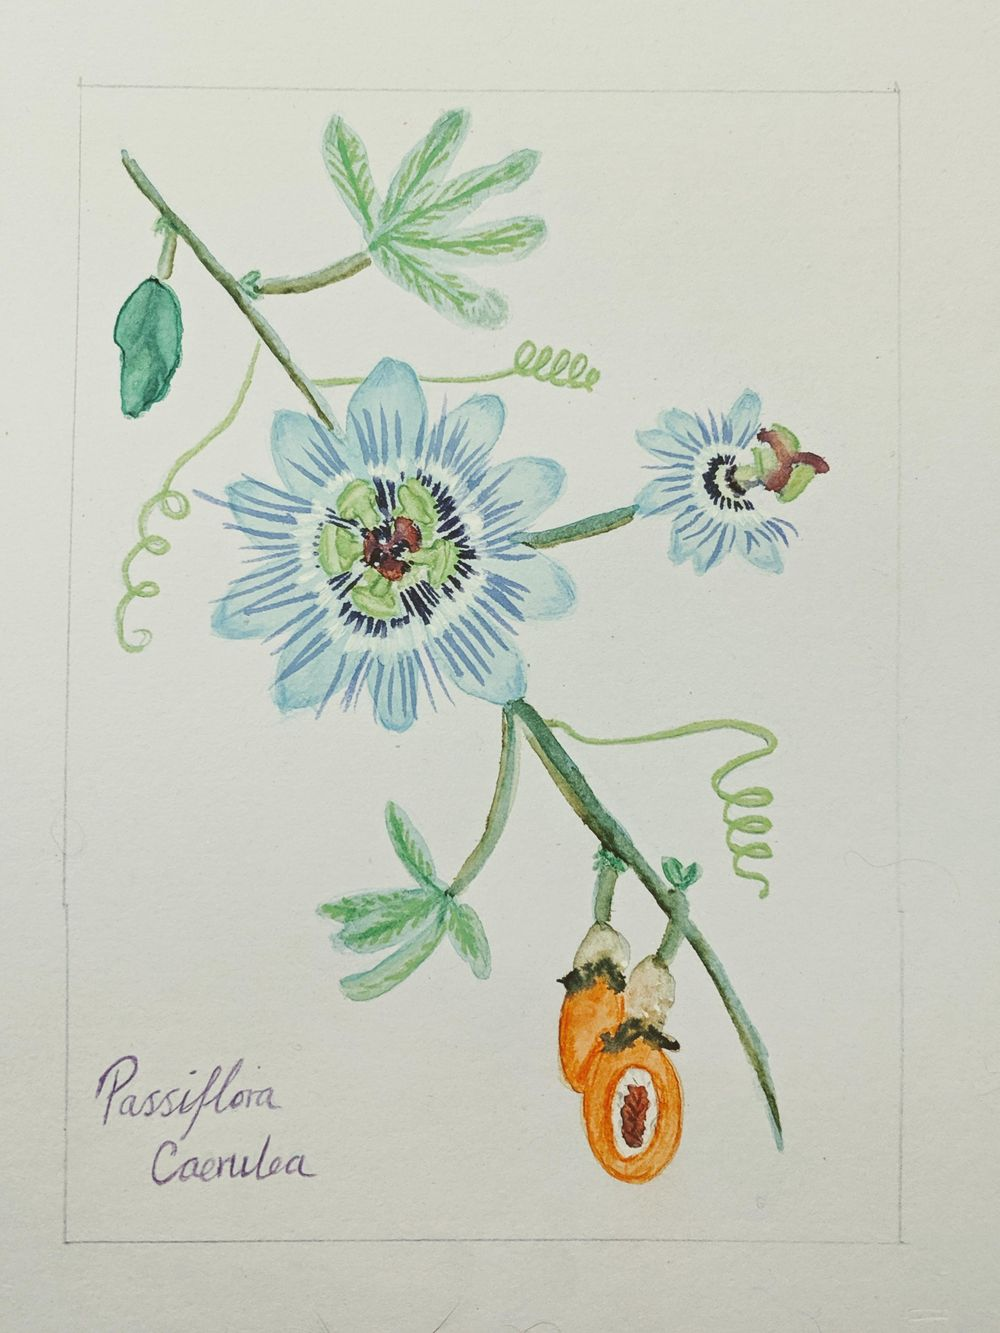 Passionflower - image 1 - student project